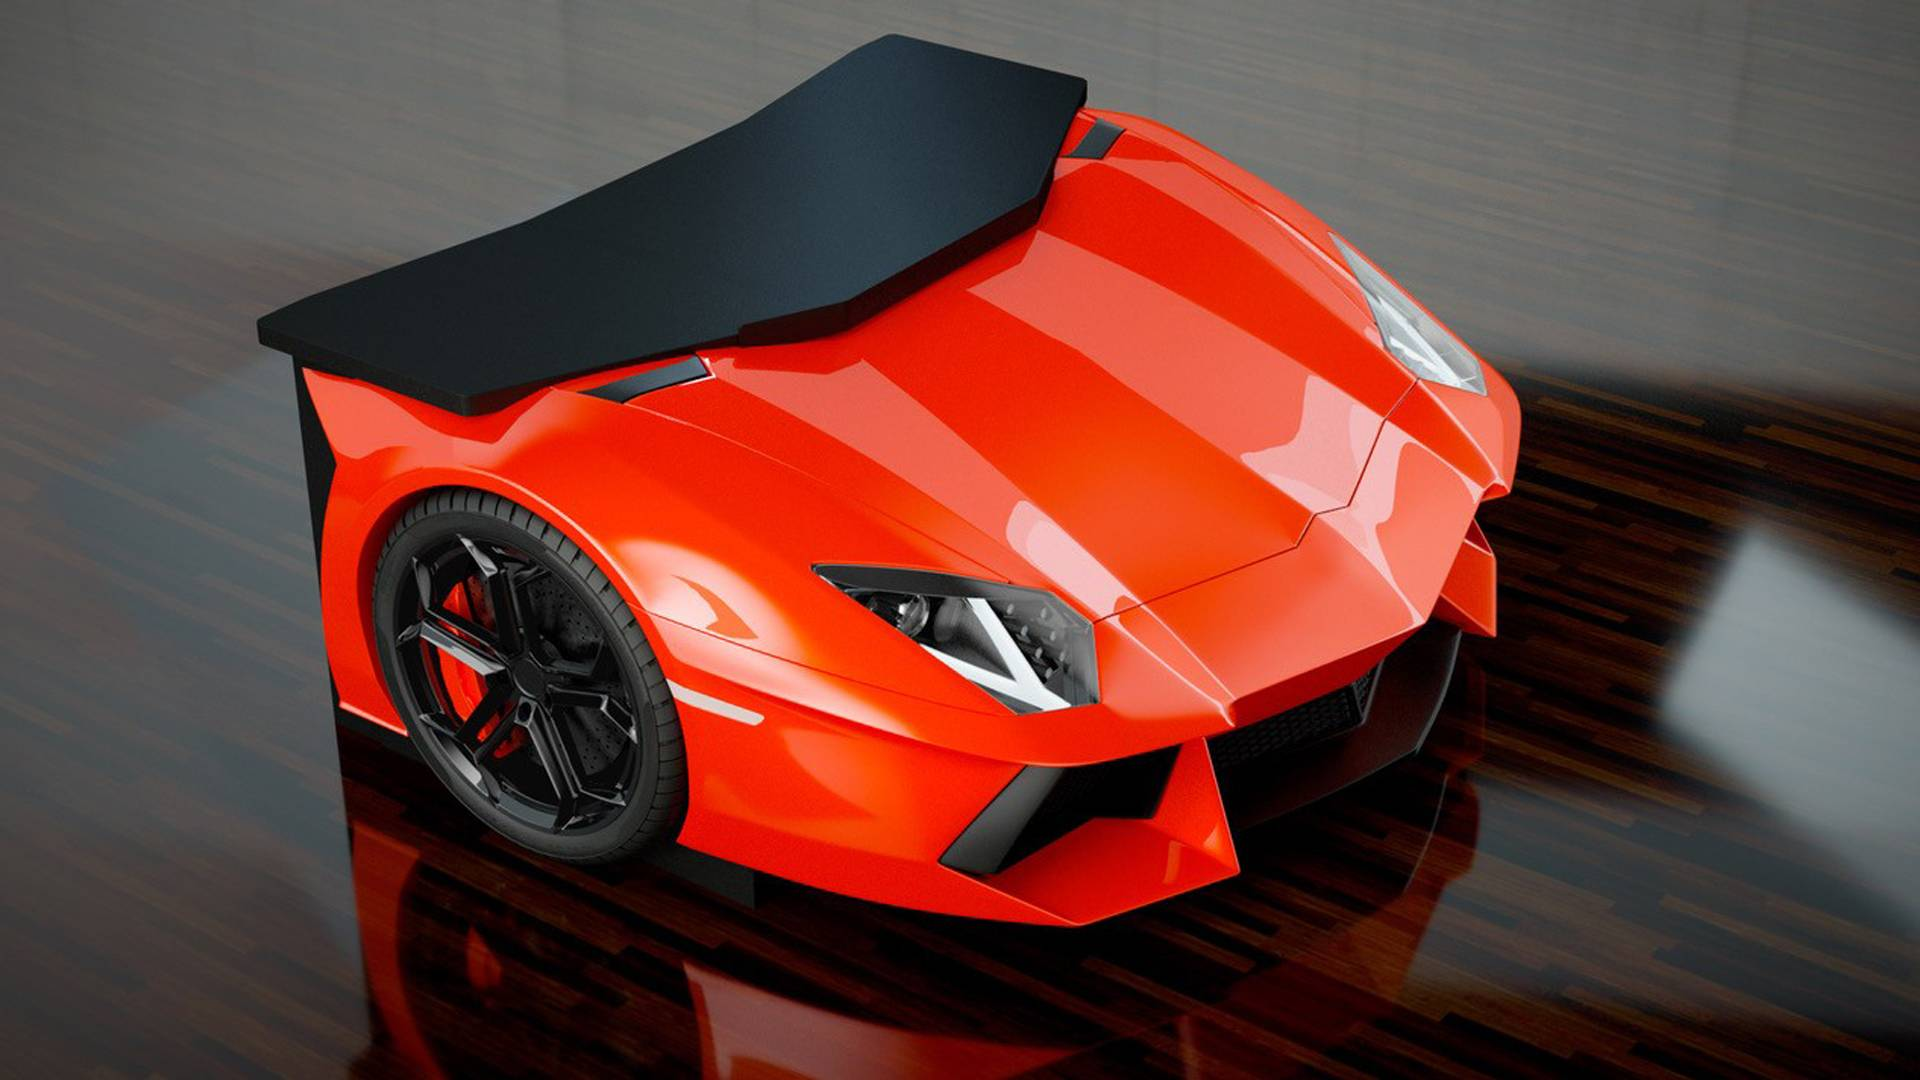 Match your lamborghini aventador with this crazy cool desk